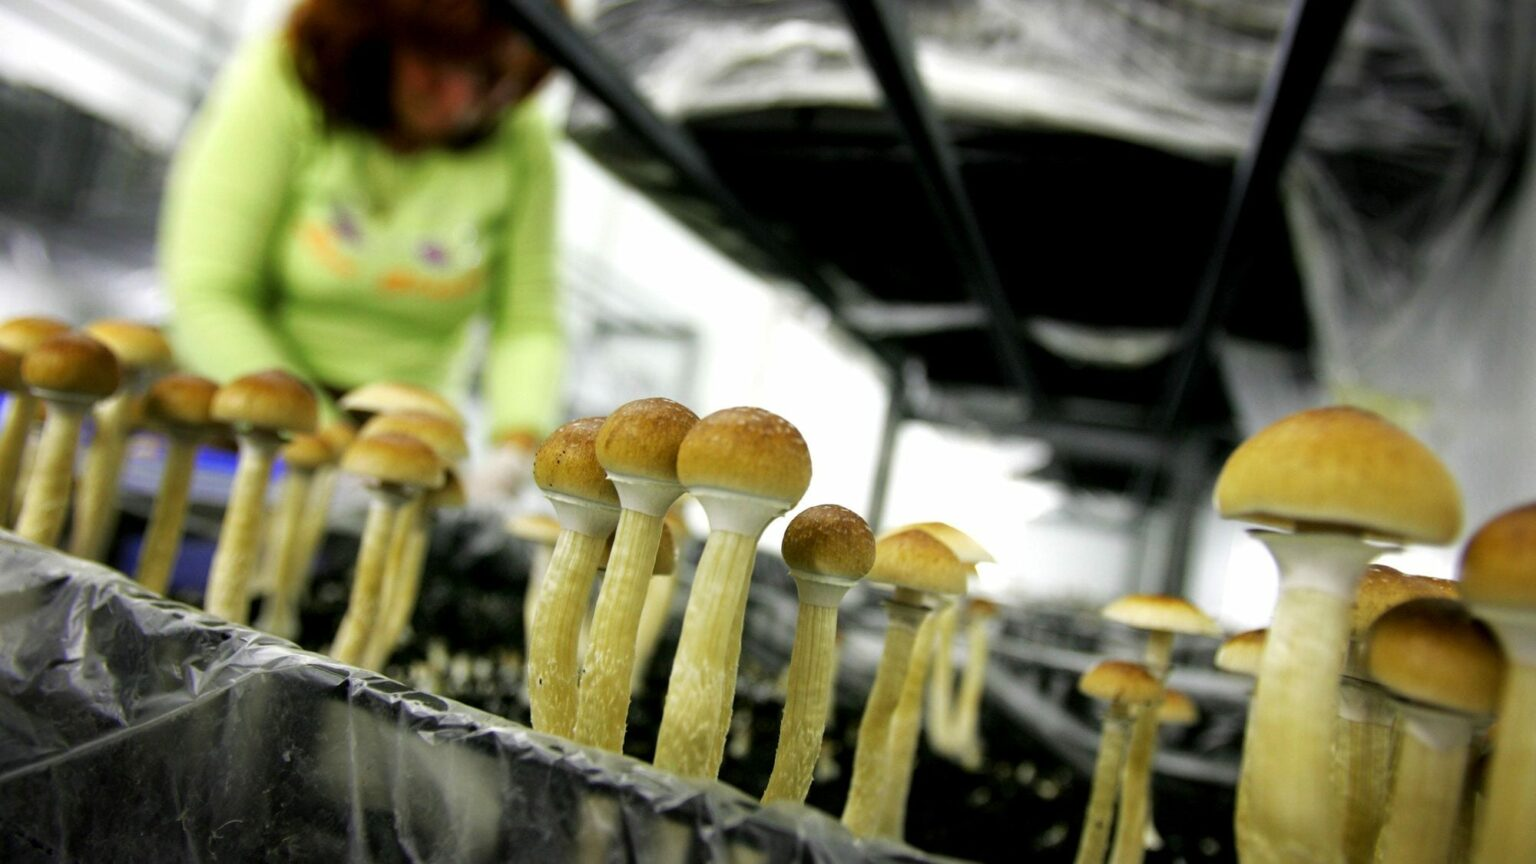 US DEA suggests huge increases to cannabis and psilocybin production for research